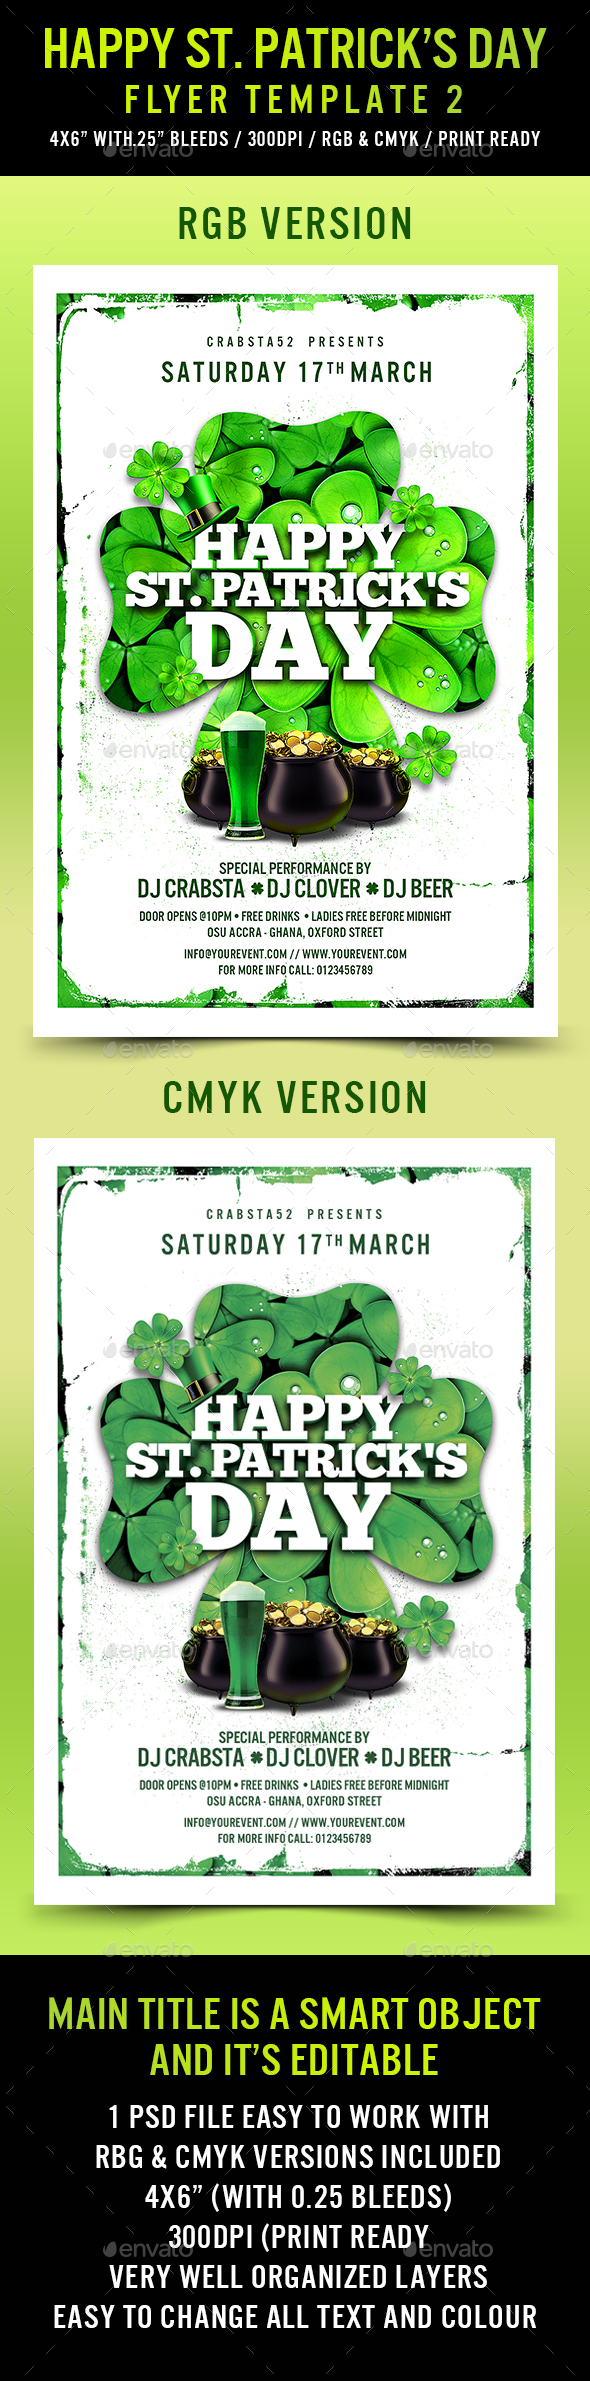 Happy St. Patrick's Day Flyer Template 2 - Flyers Print Templates